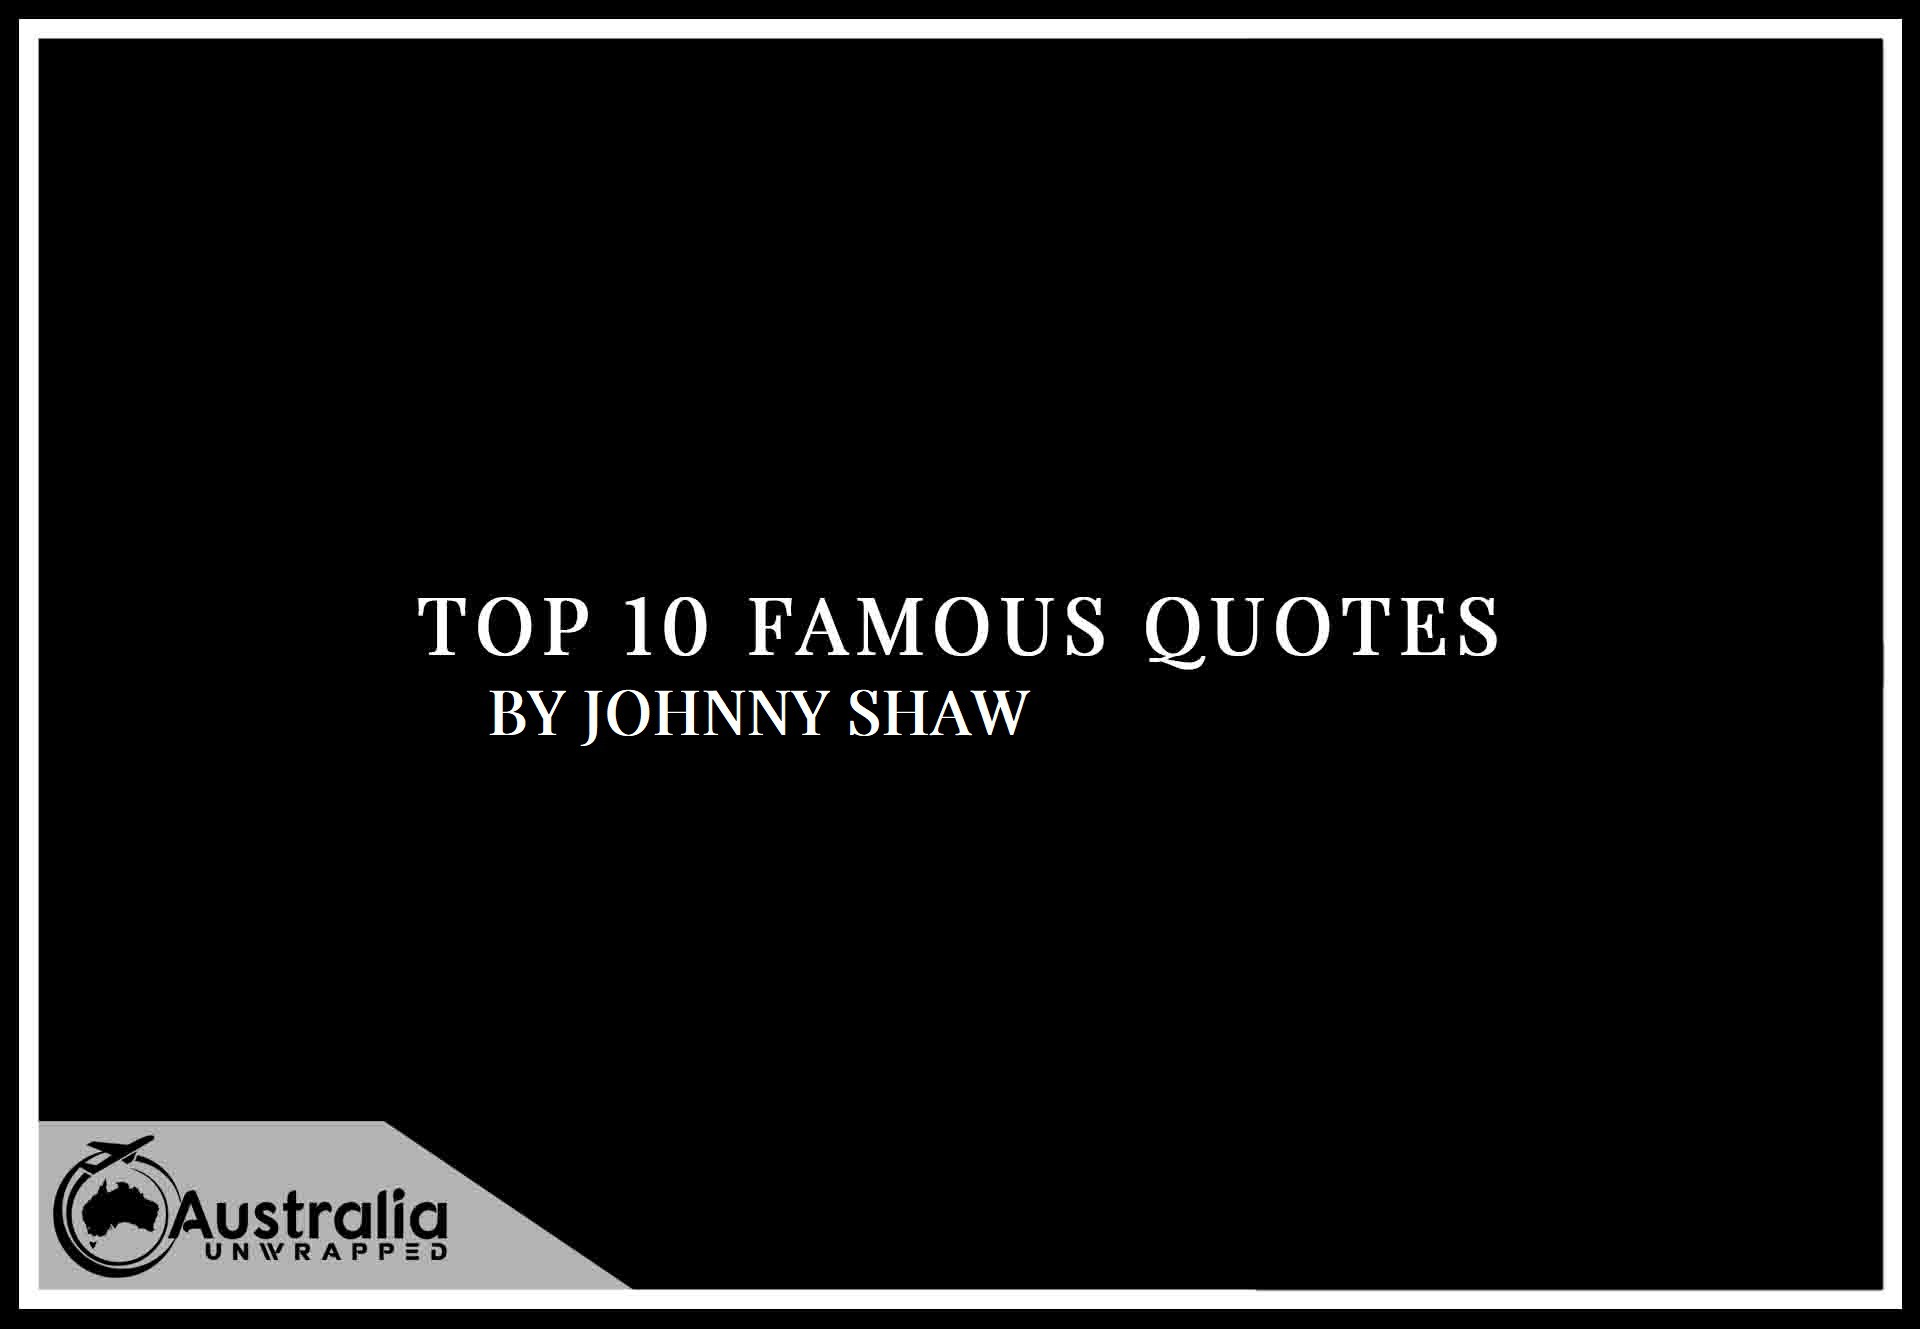 Top 10 Famous Quotes by Author Johnny Shaw